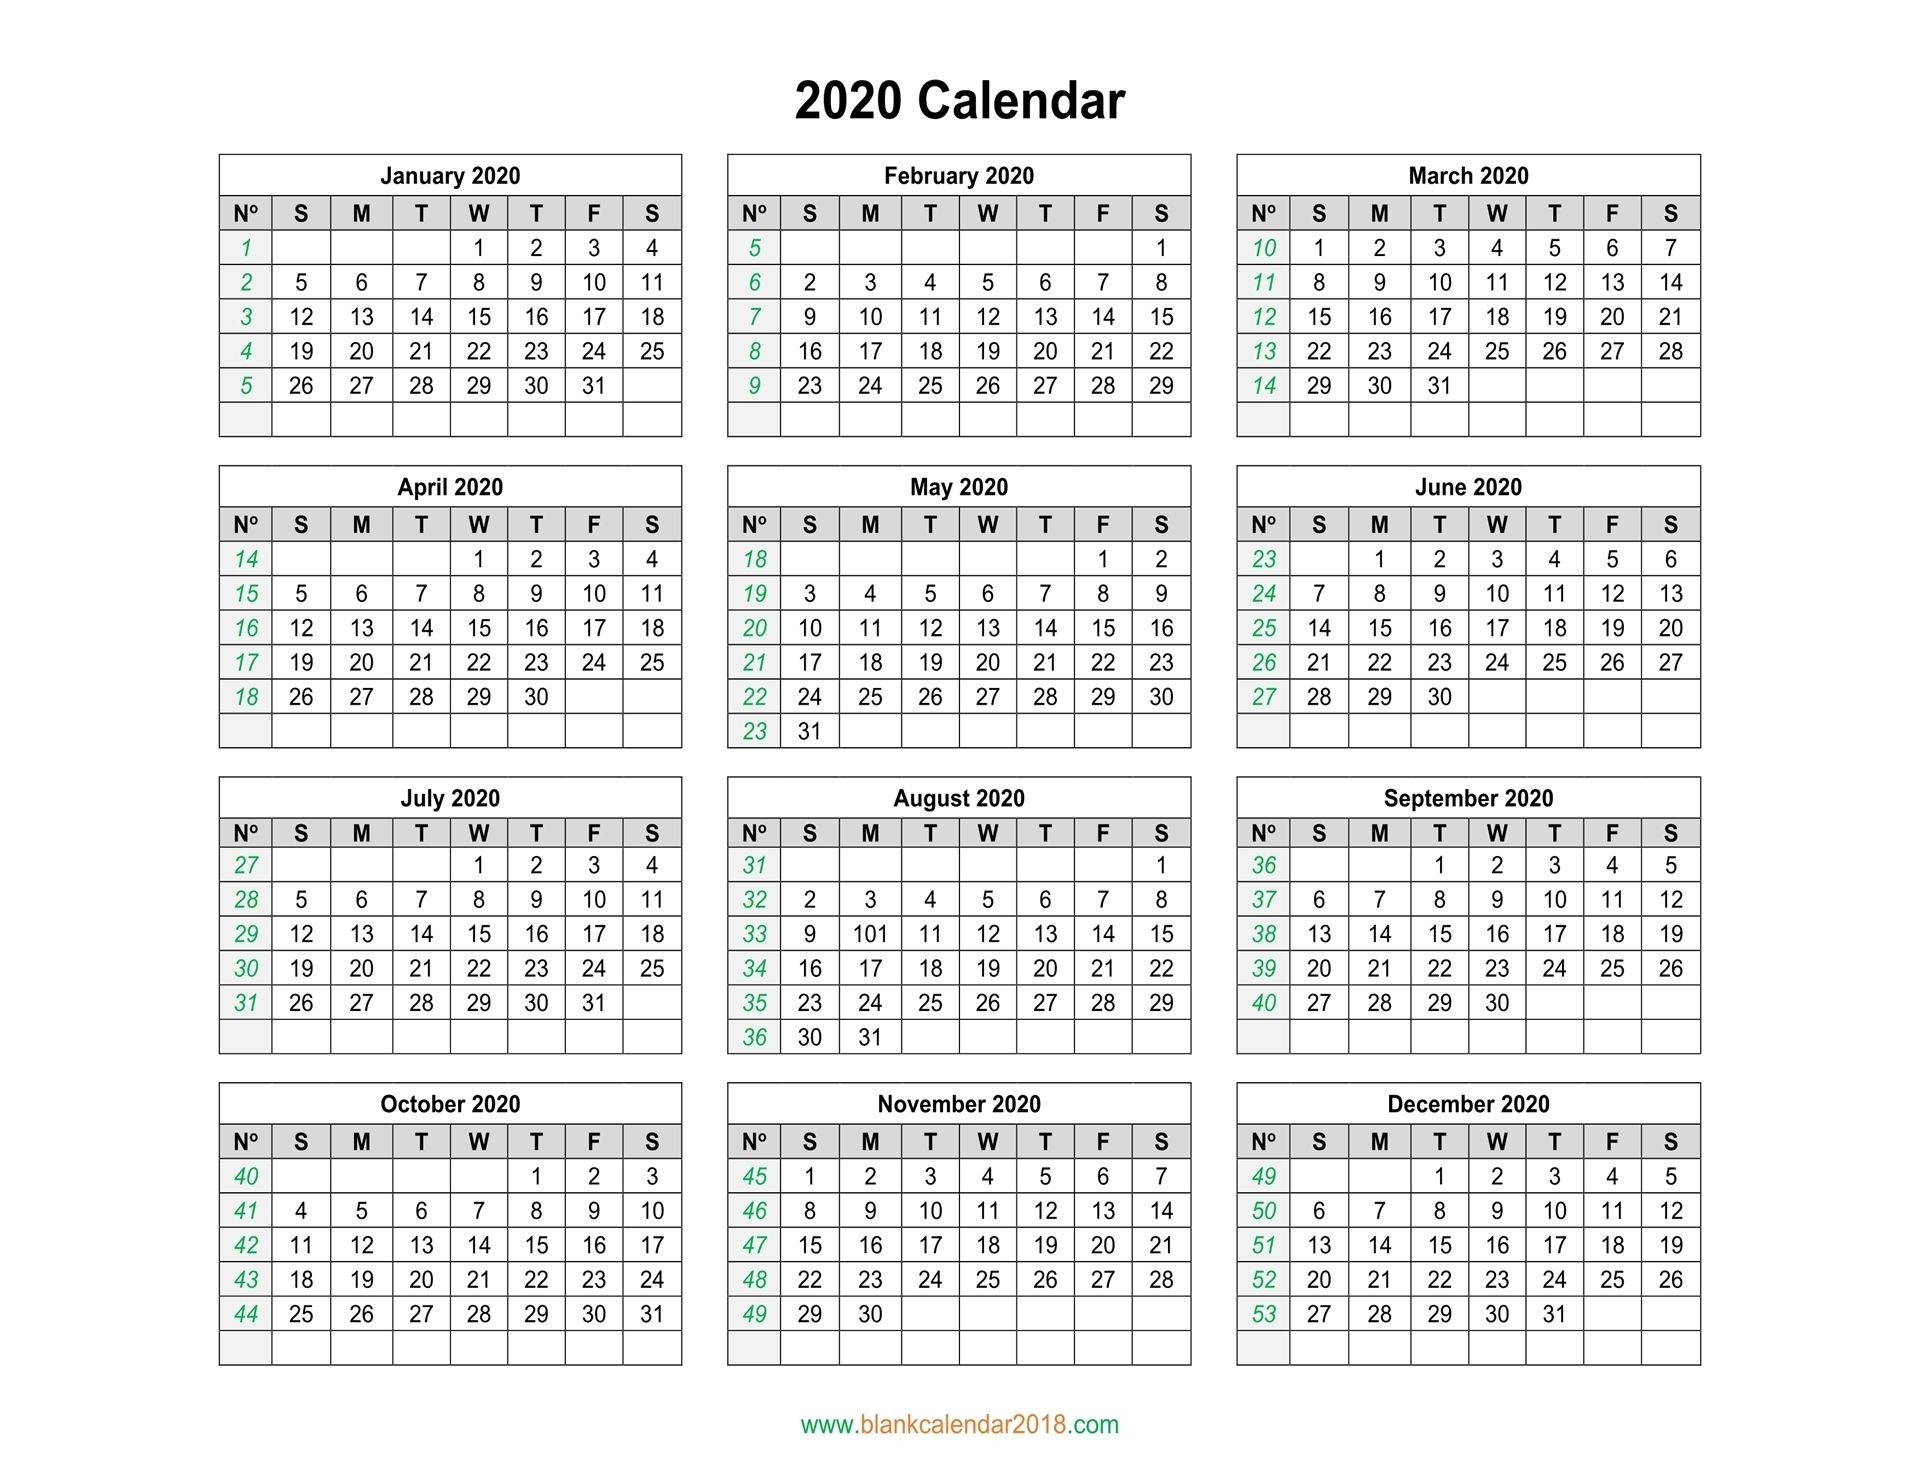 Remarkable Calendar With Days Numbered 2020 In 2020 intended for 2021 Rut Predictions